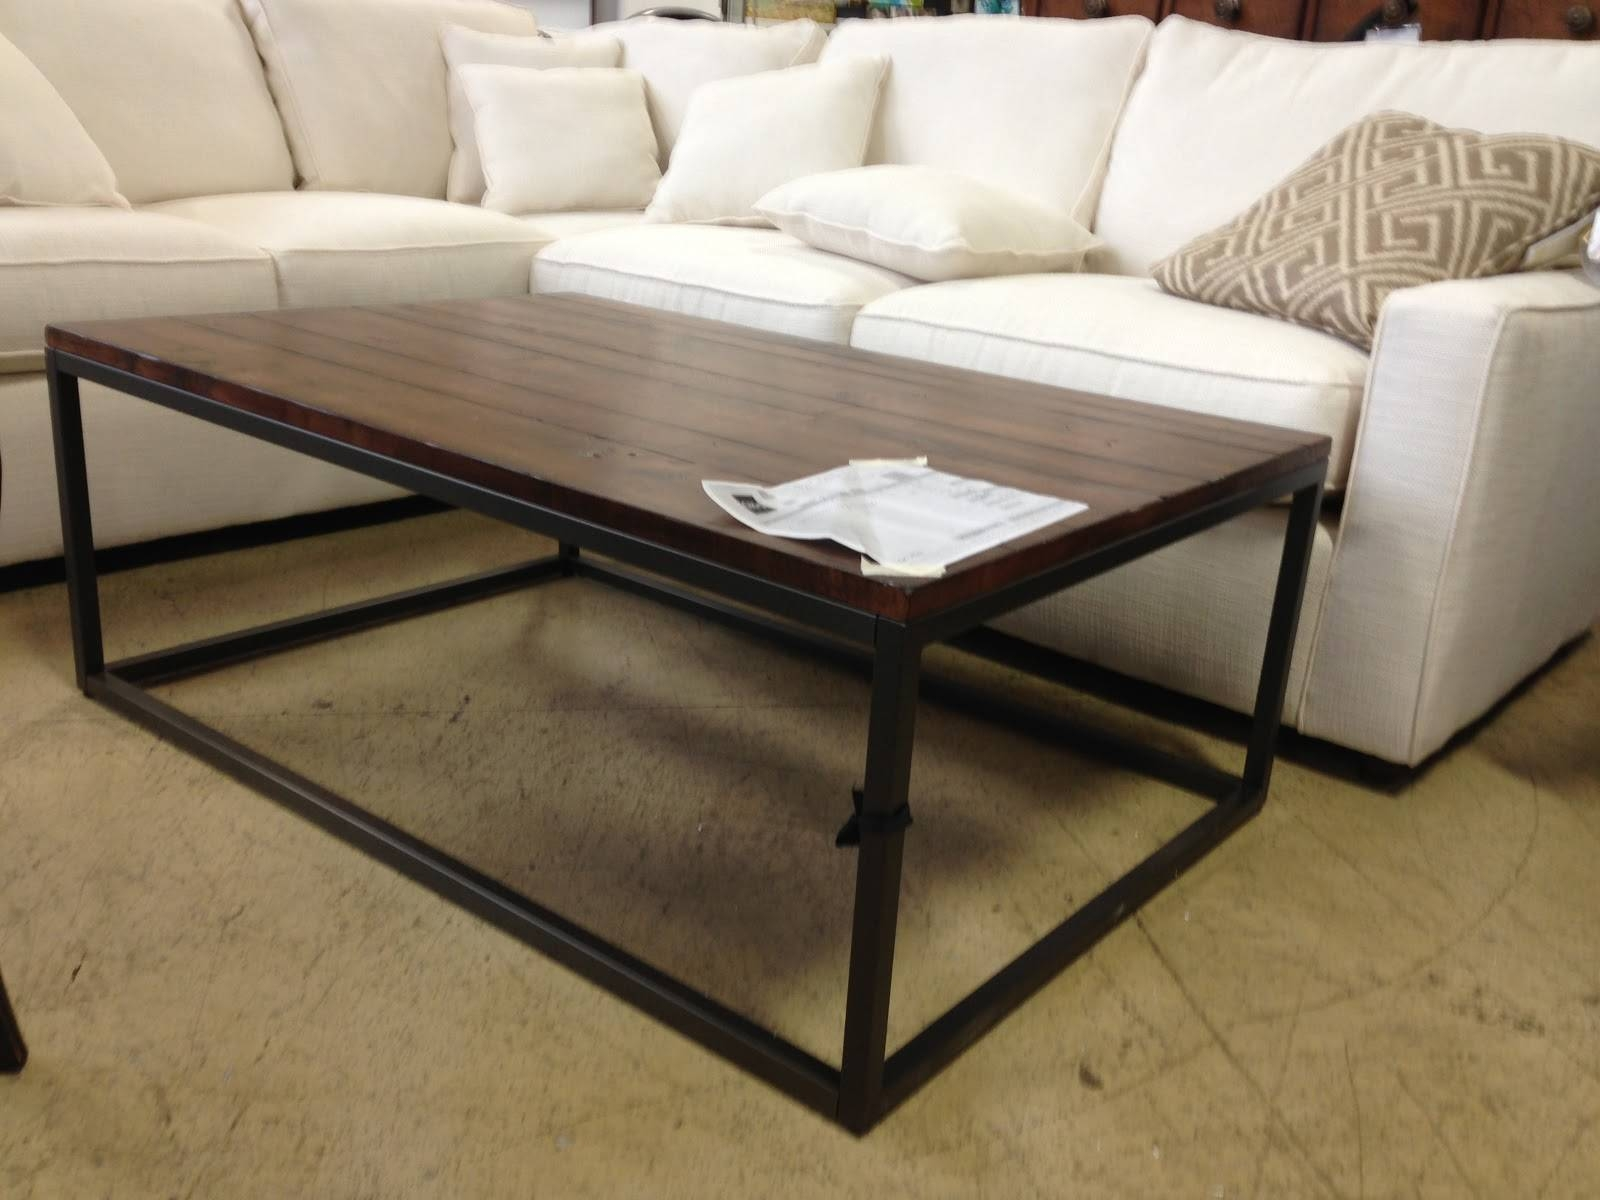 Black And White Puzzle Coffee Table For Living Room Pictures in Puzzle Coffee Tables (Image 11 of 30)